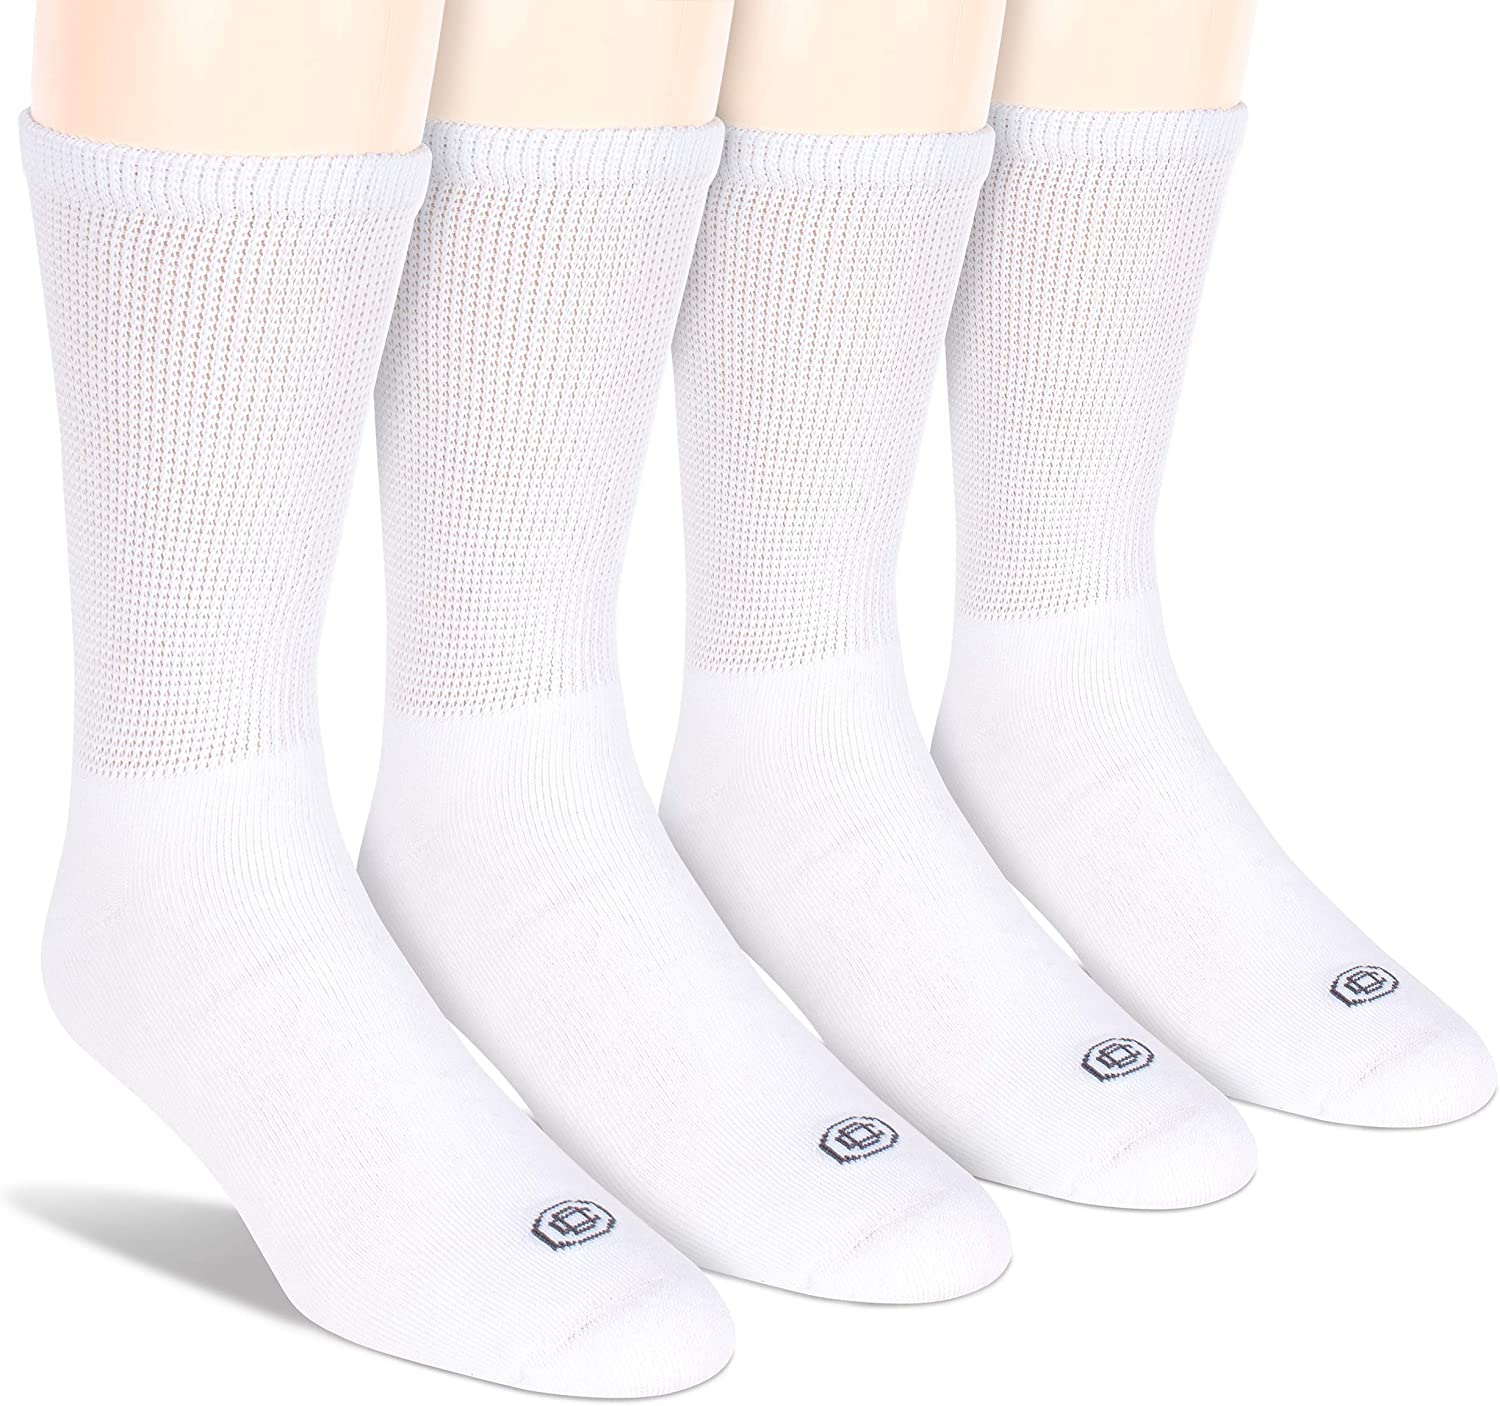 Doctor's Choice Men's Diabetic Crew Socks, Wide Non-Binding Top, Circulatory, Full Cushion, 4 Pack, White, Large, Sock Size 10-13: Health & Personal Care